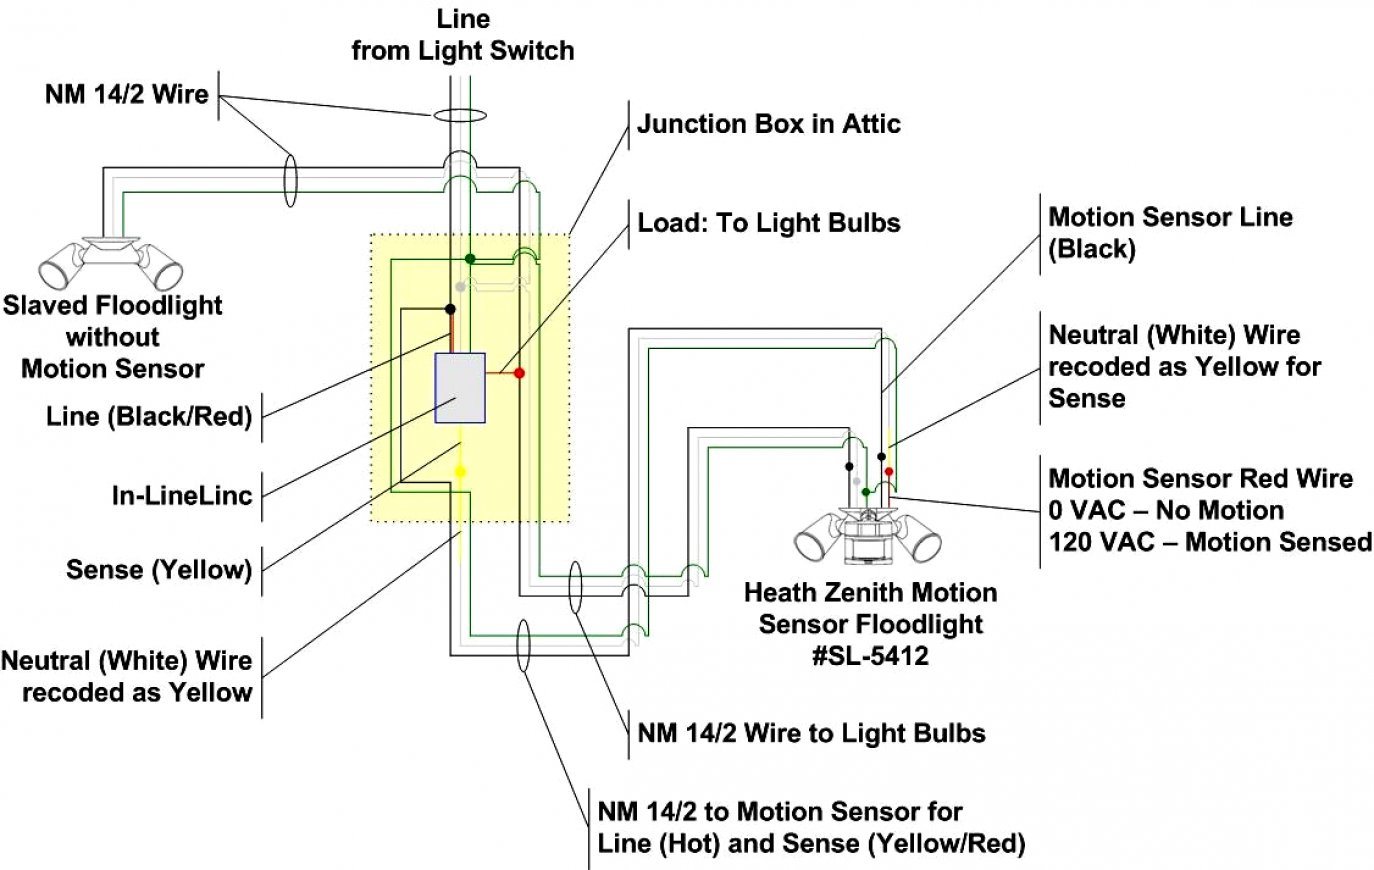 Zenith Motion Sensor Light Wiring Diagram | Manual E-Books - Heath Zenith Motion Sensor Light Wiring Diagram